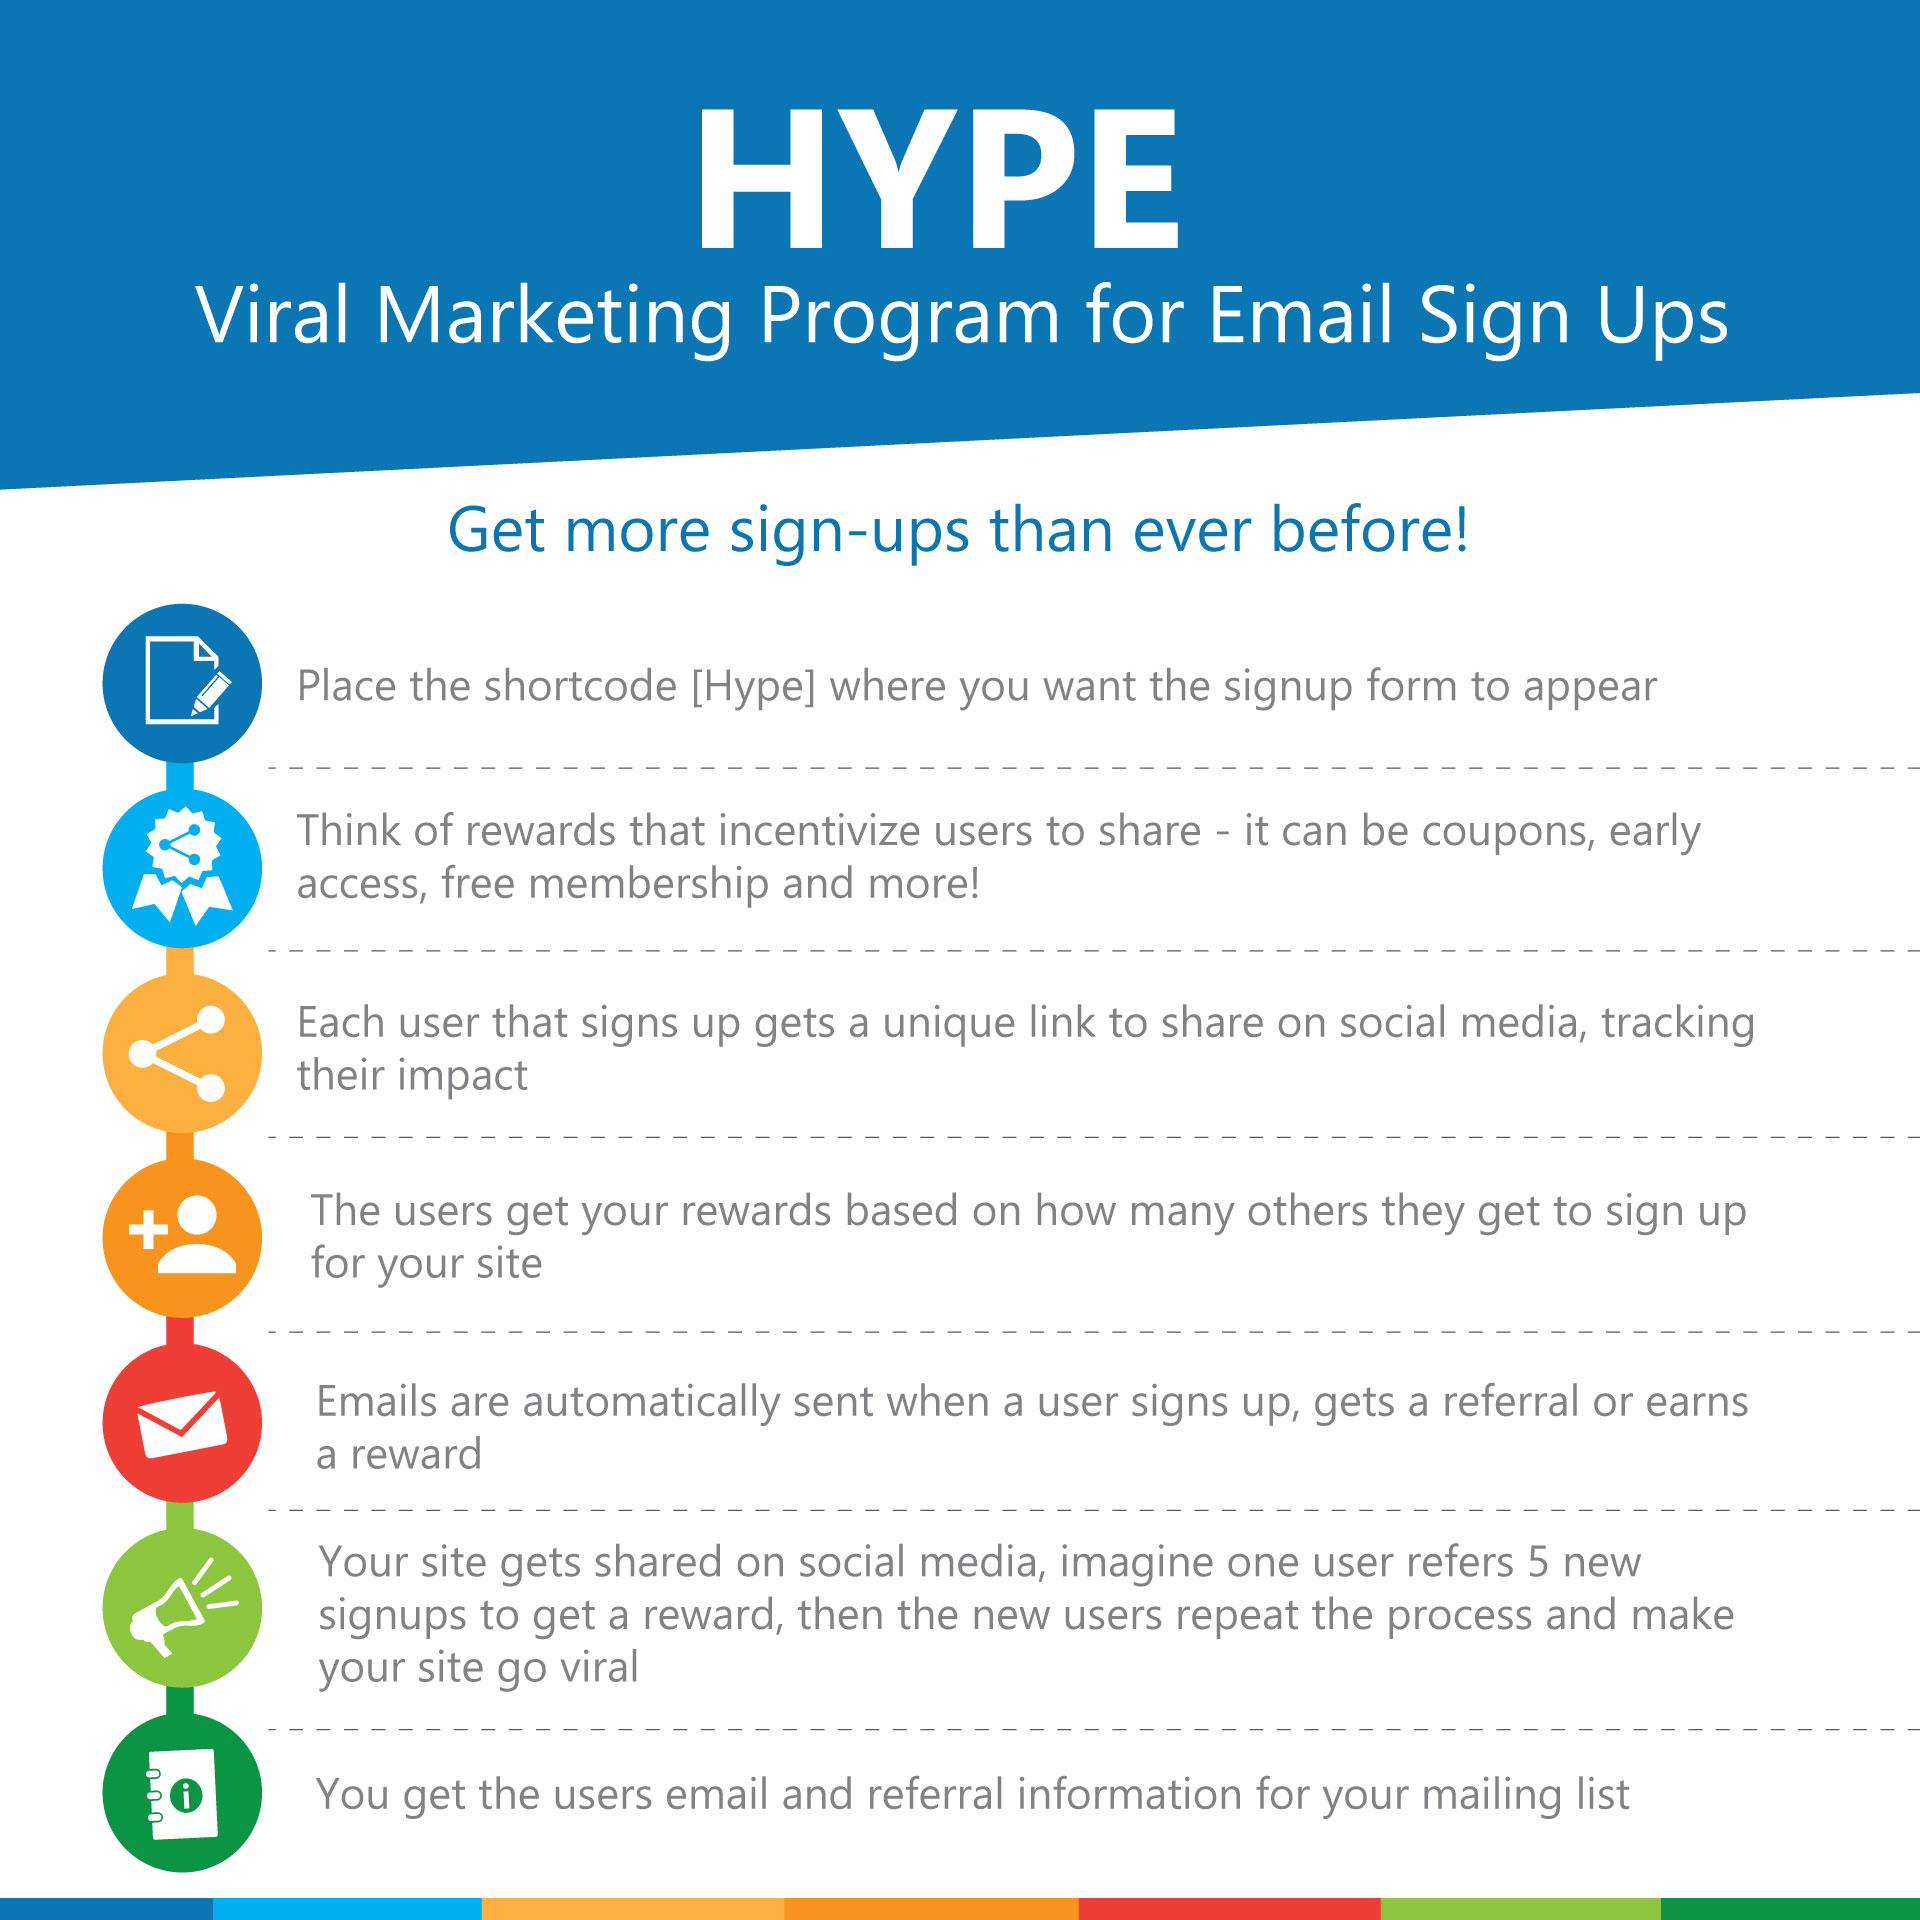 HYPE - Viral Marketing Program for Email Sign Ups - 2